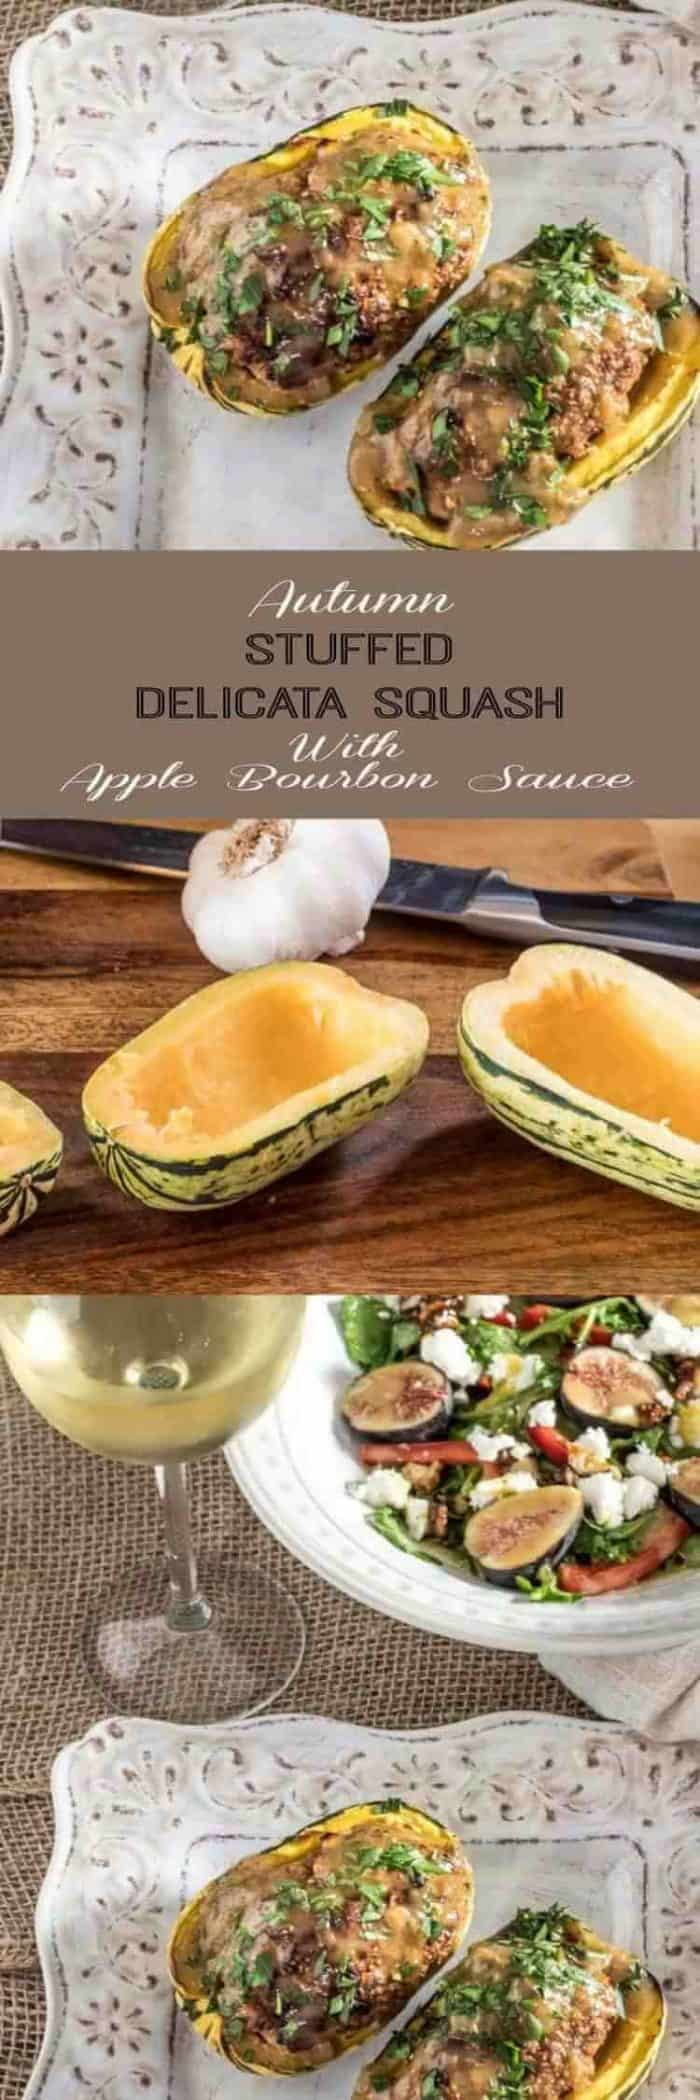 Autumn Stuffed Delicata Squash With Apple Bourbon Sauce - Tender delicata squash is roasted with a healthy ground chicken, apple, walnut, and sage mixture, then roasted and topped with an apple bourbon glaze... Delish! #delicatasquash #stuffedsquash #wintersquash